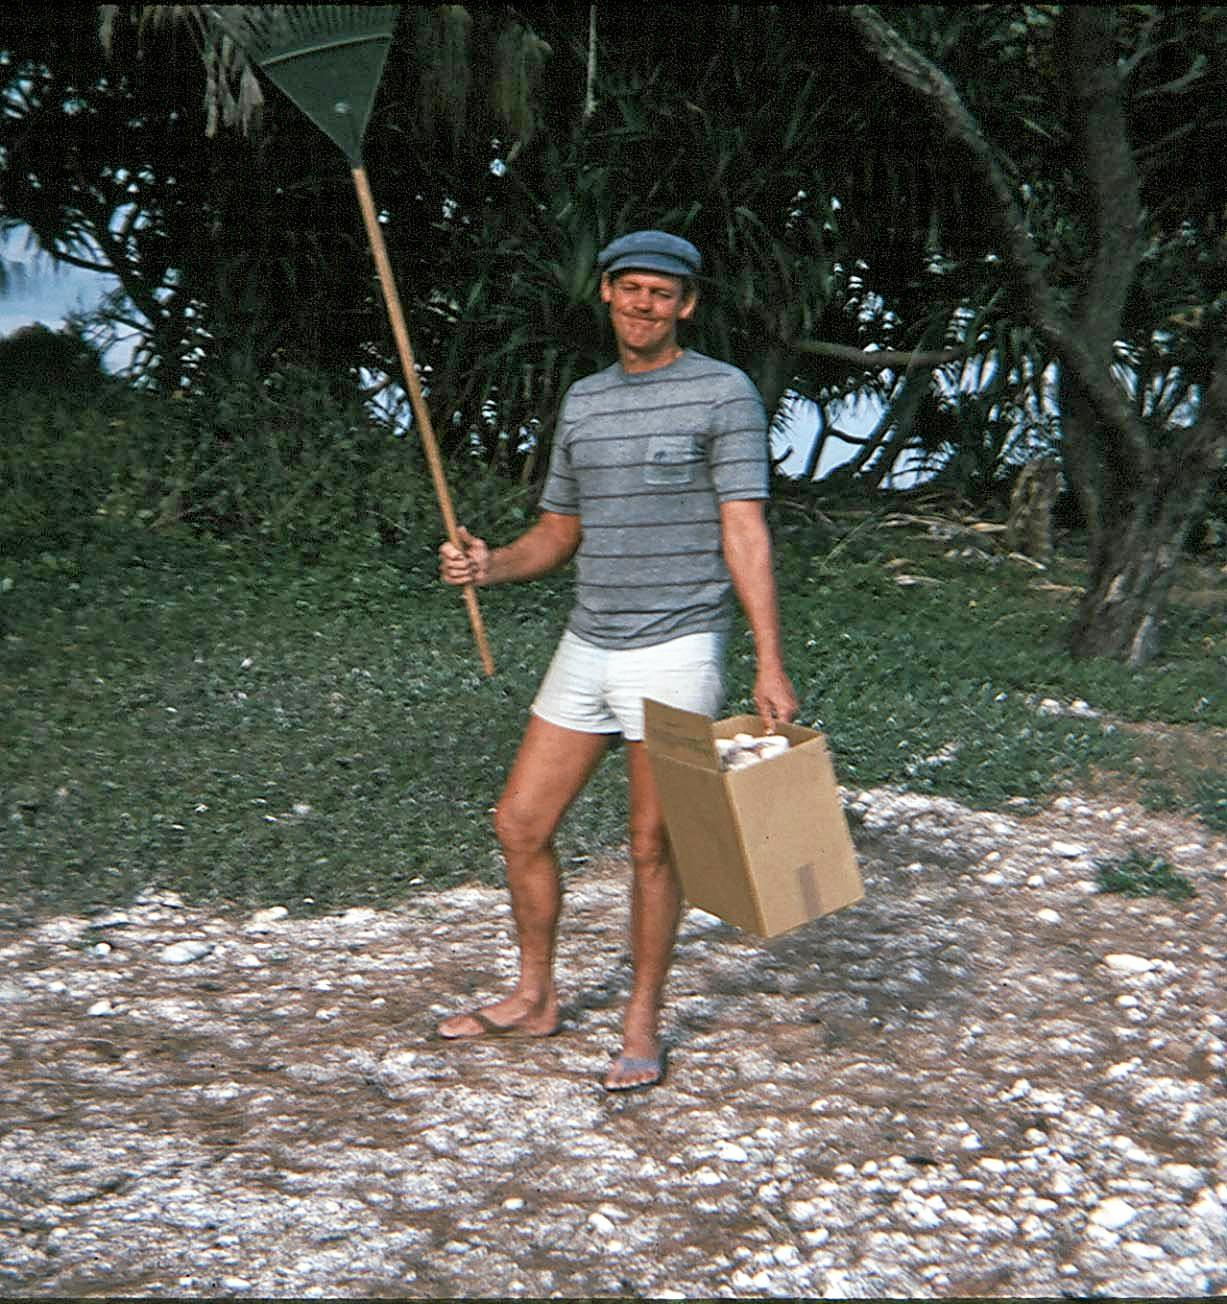 Peter Troy wears odd thongs found on Old Woman Island as he rakes pandanus leaves and collects rubbish, some time in the 1980s.